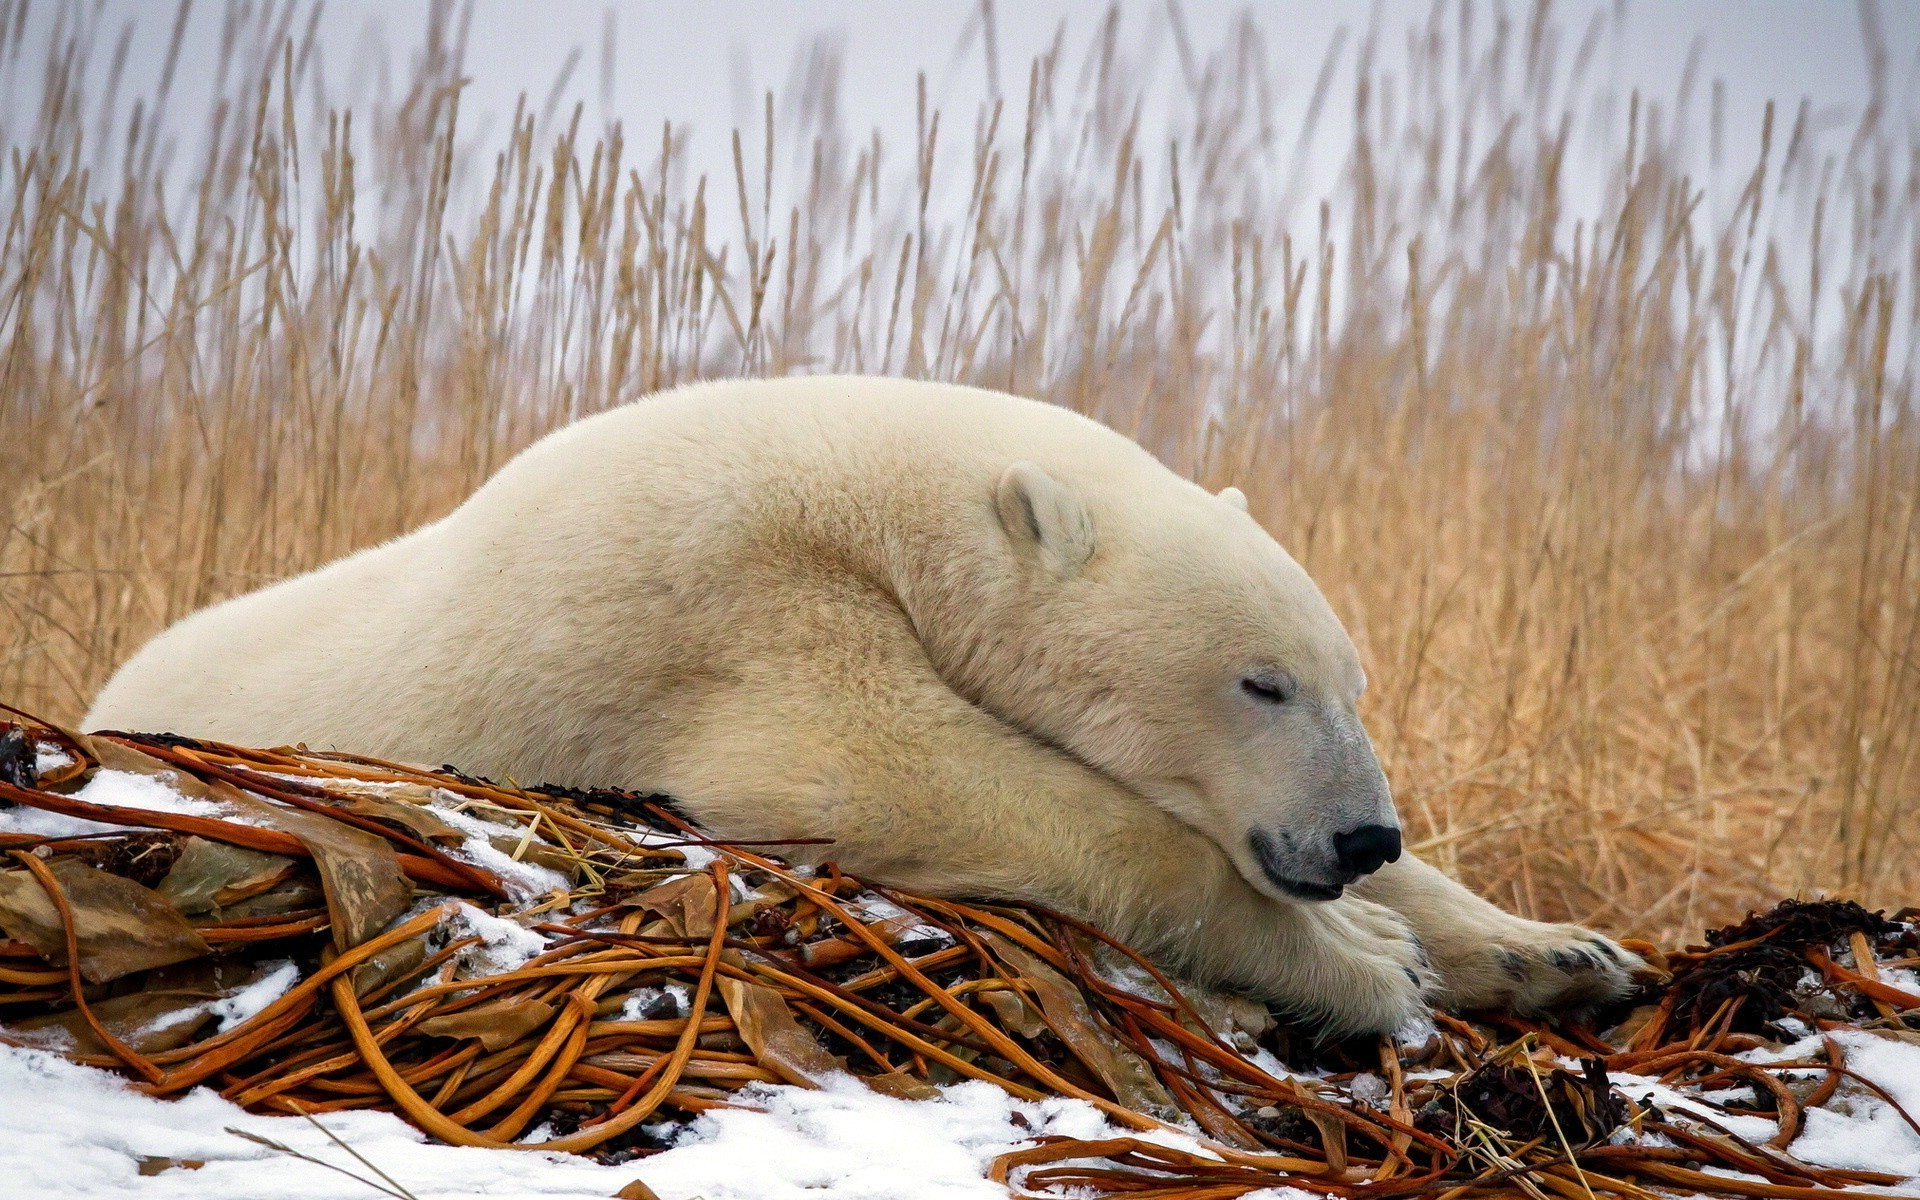 The prone polar bear